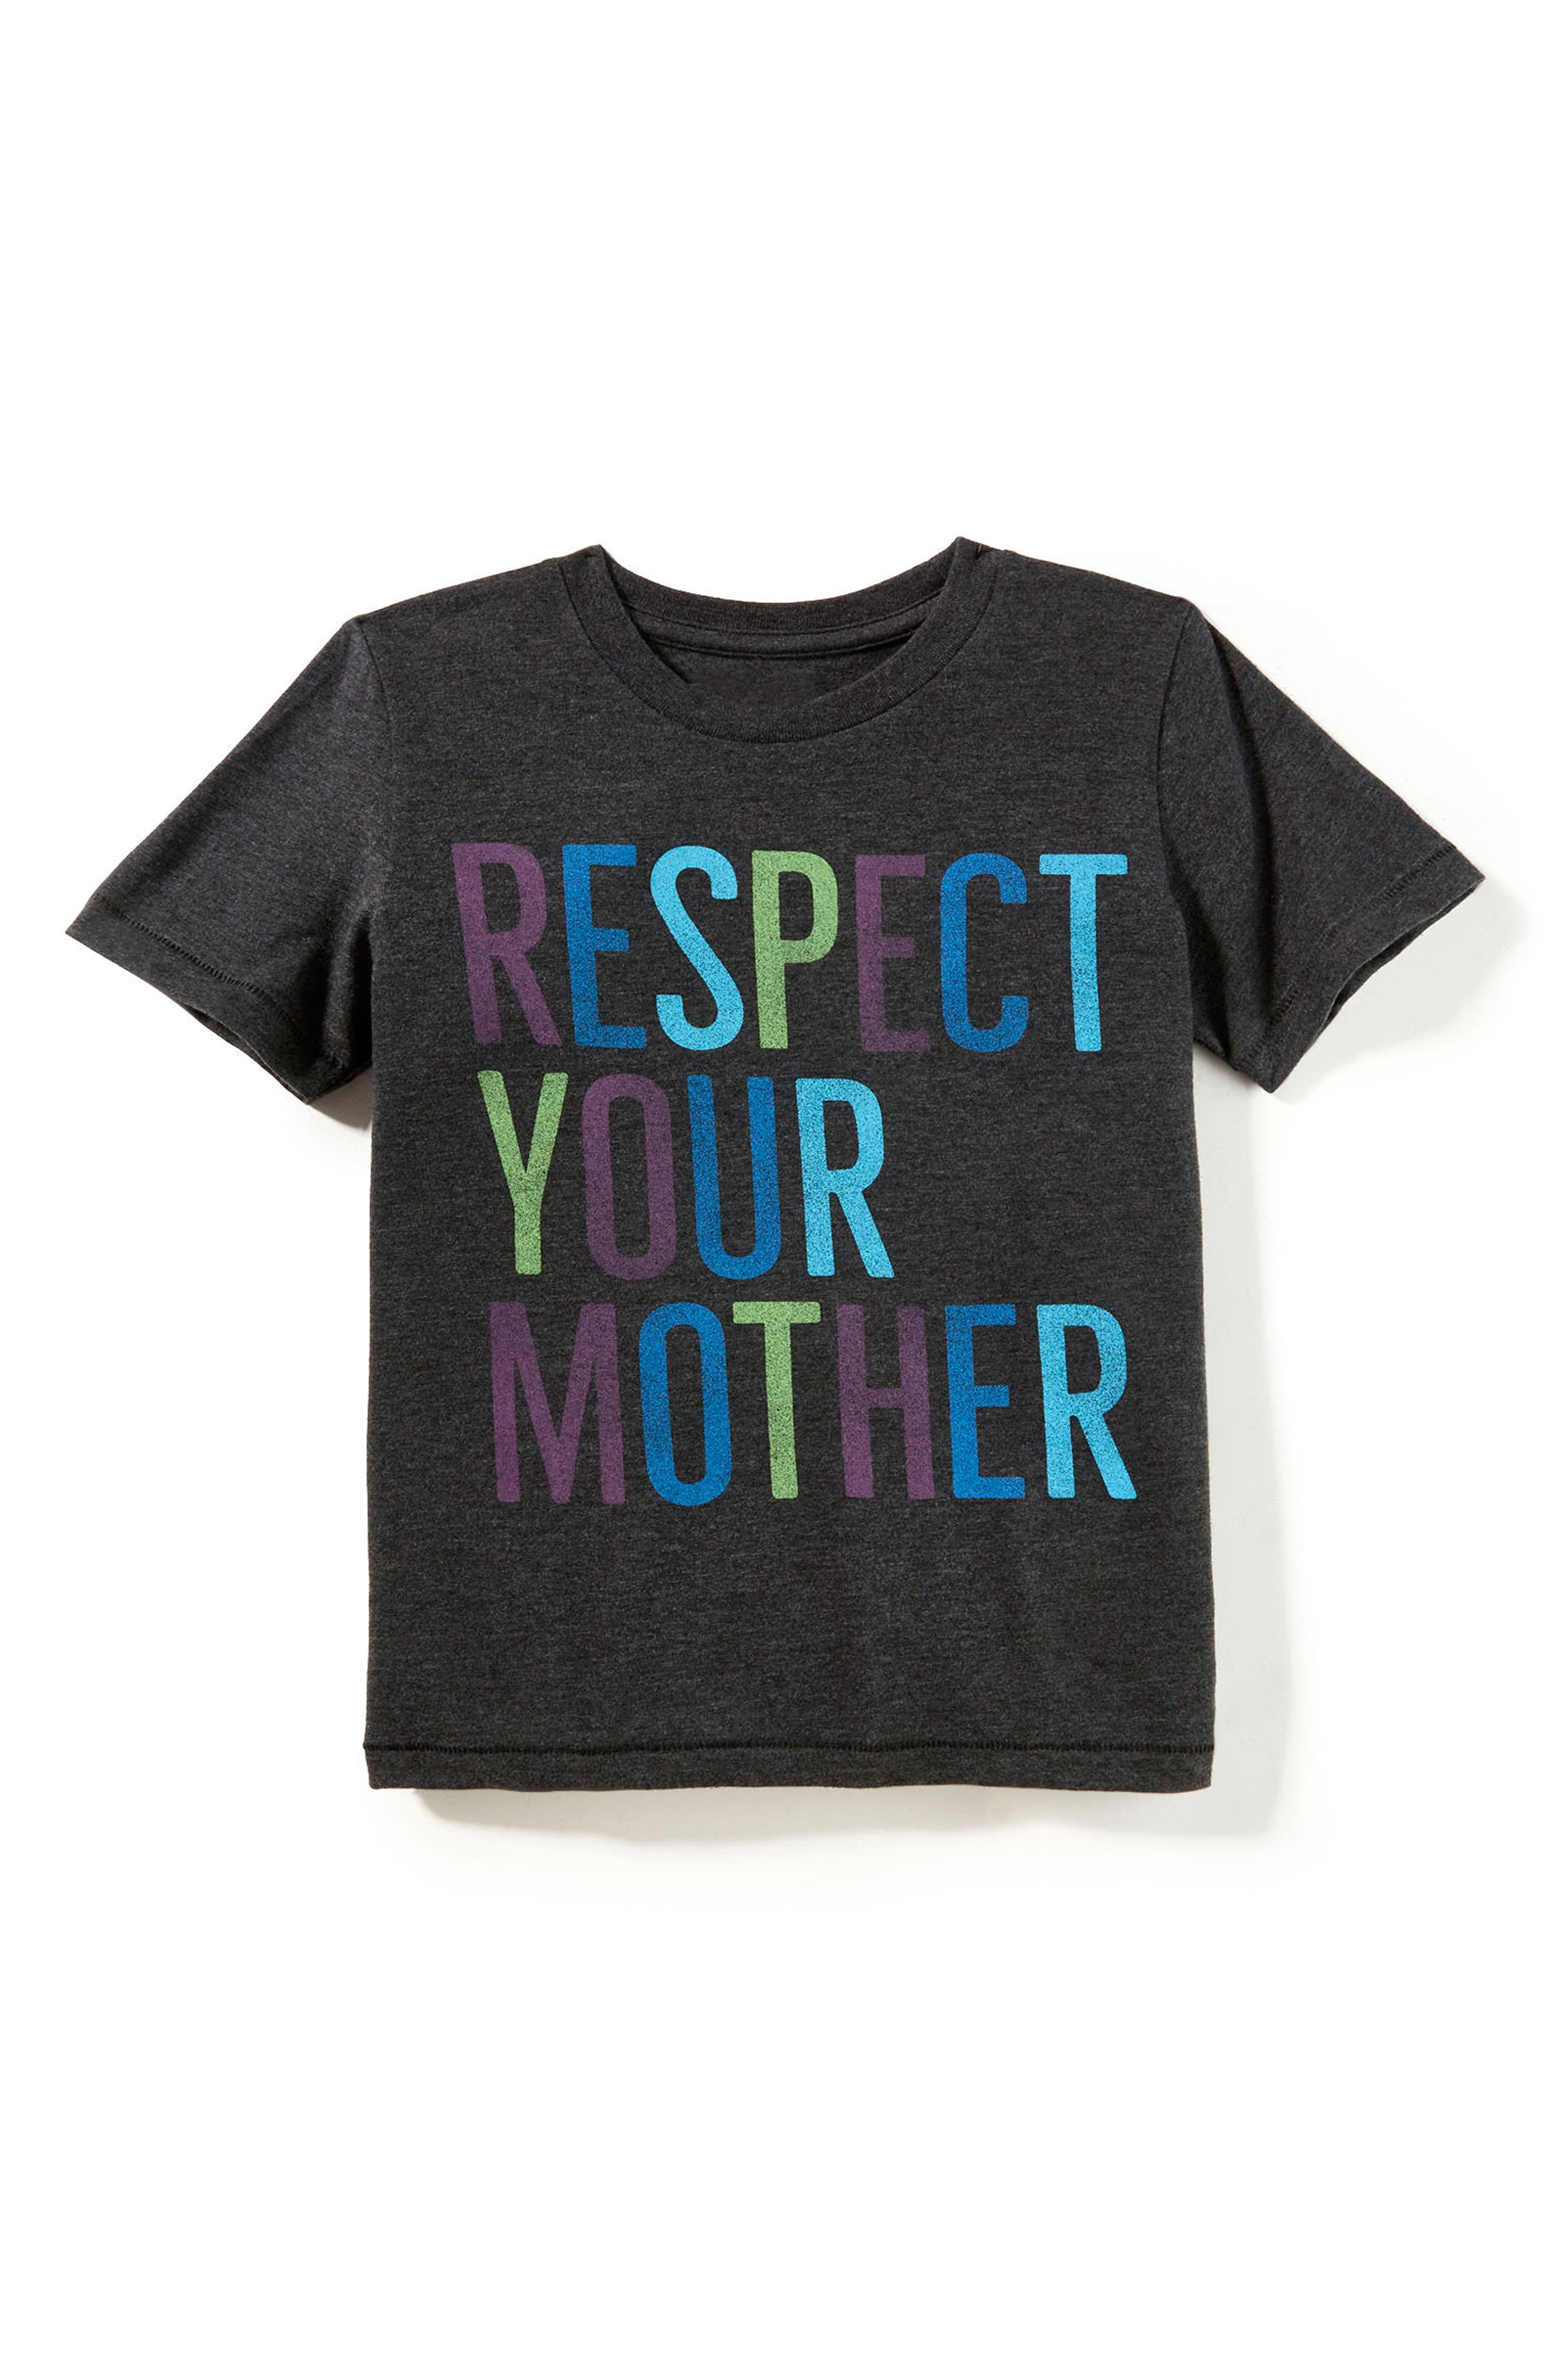 Alternate Image 1 Selected - Peek Respect Your Mother Graphic T-Shirt (Toddler Boys, Little Boys & Big Boys)